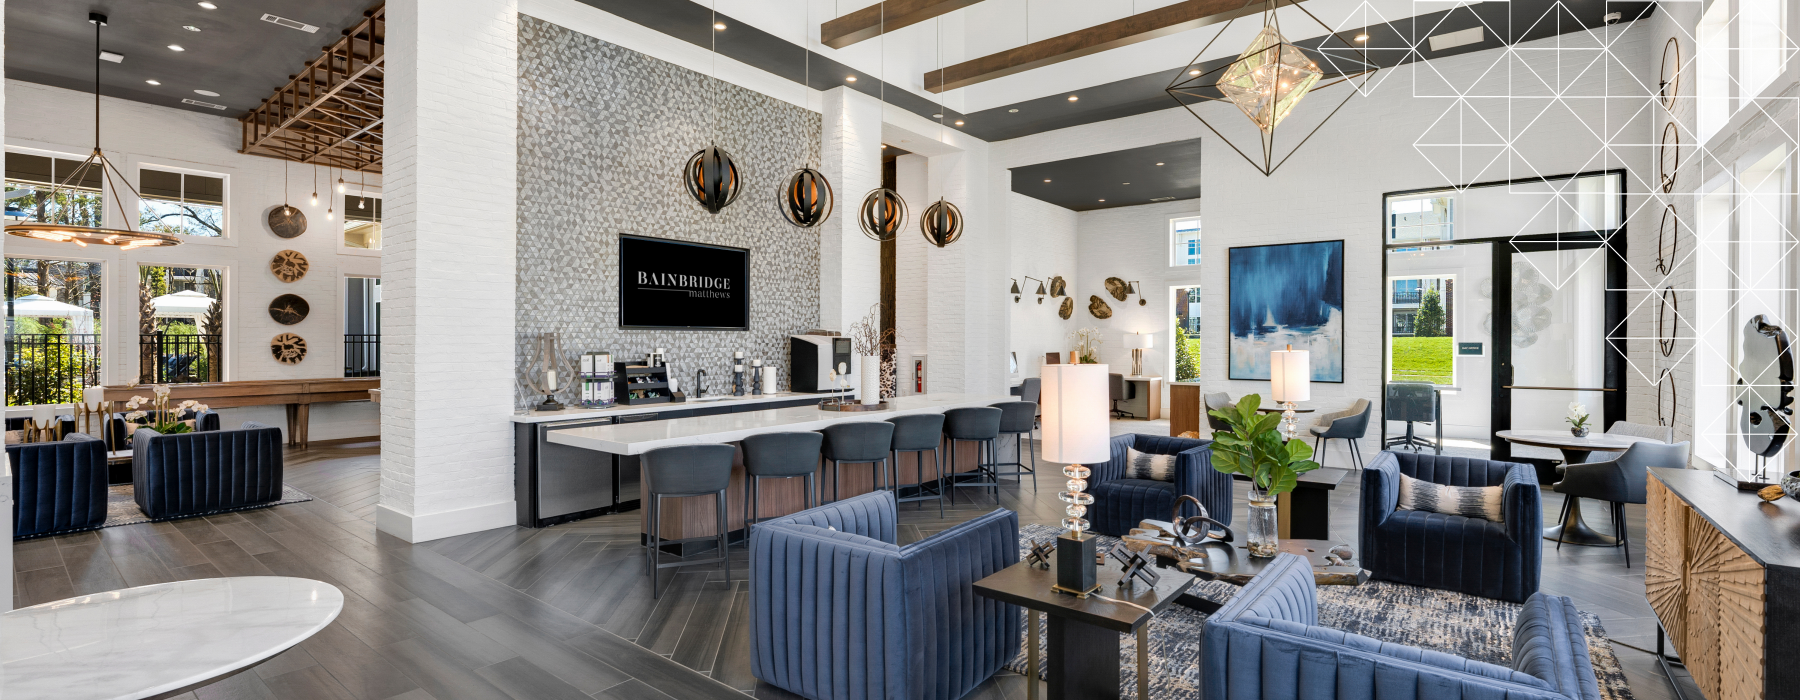 luxurious clubroom with high ceilings and stylized lighting